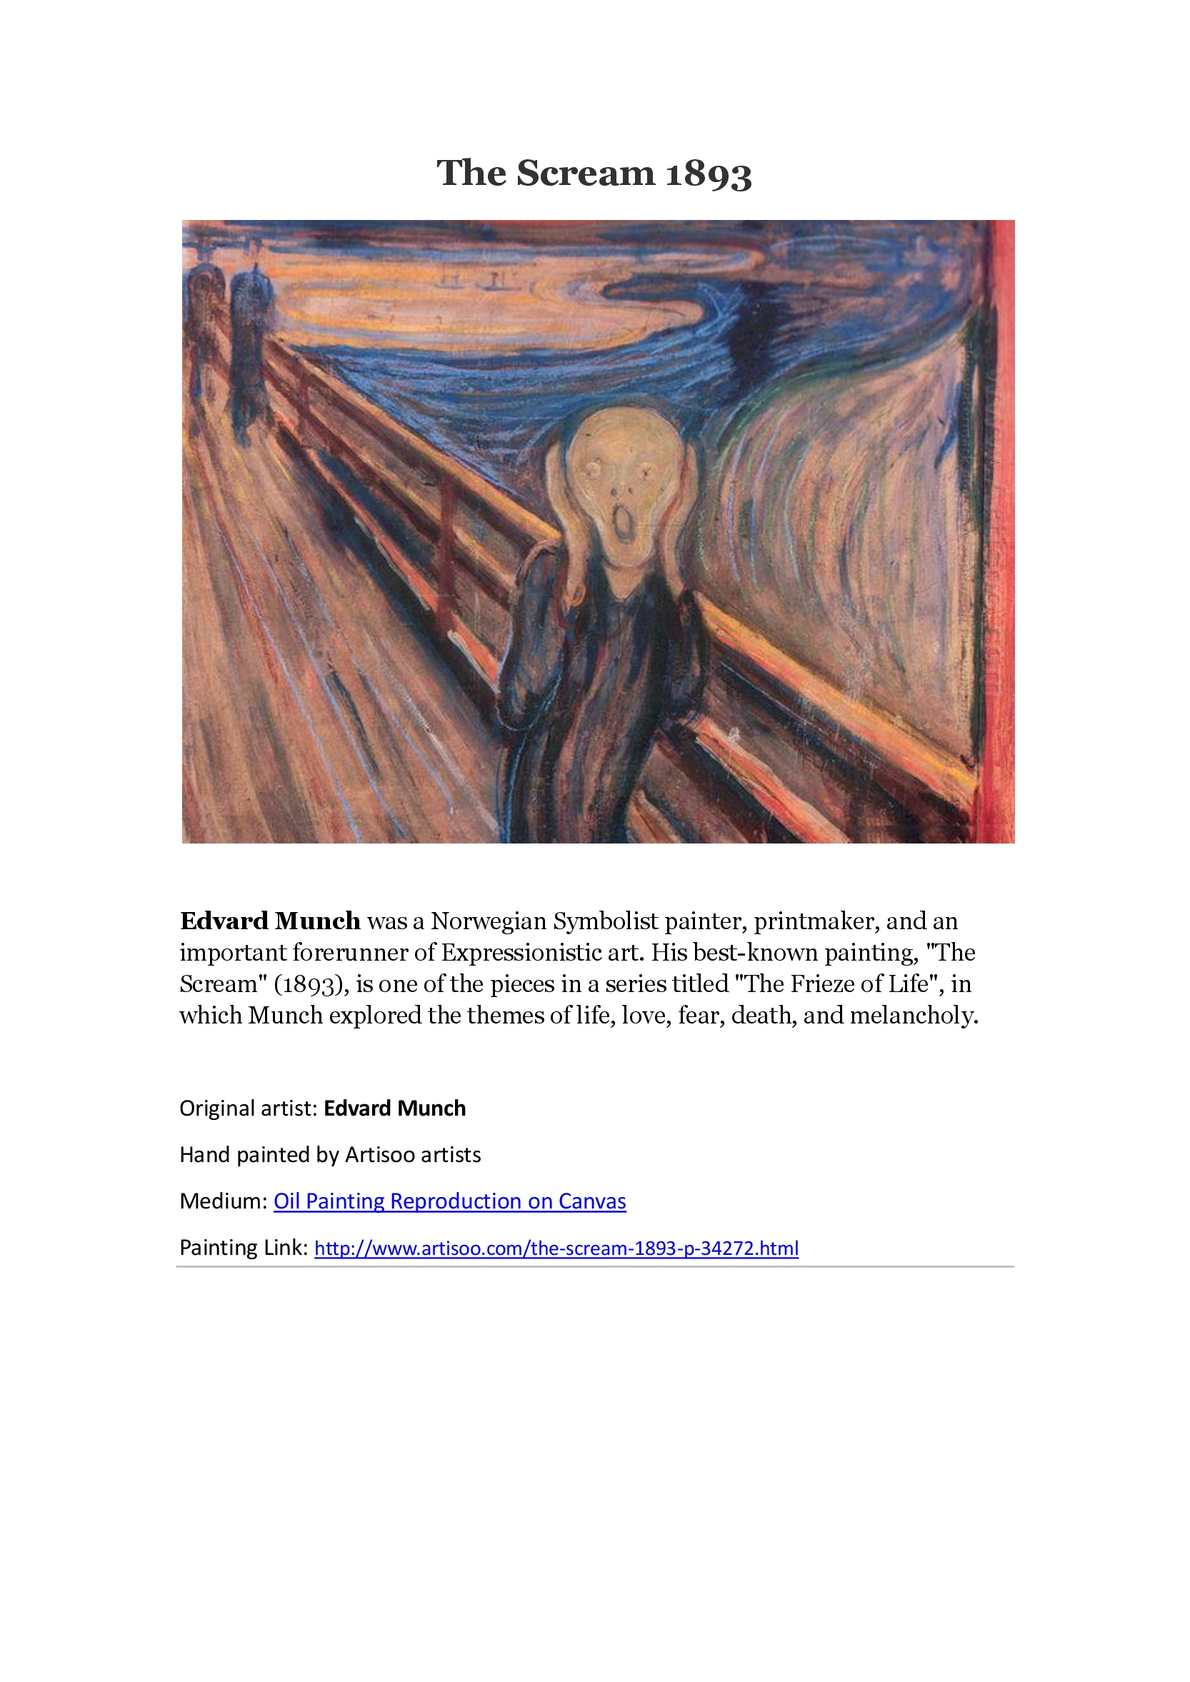 the scream munch essay The two featureless figures in the background could represent munch's expression of the group or group mentality, who are only concerned with their daily lives and are completely unaware of the daunting vastness of nature presented right before their eyes.